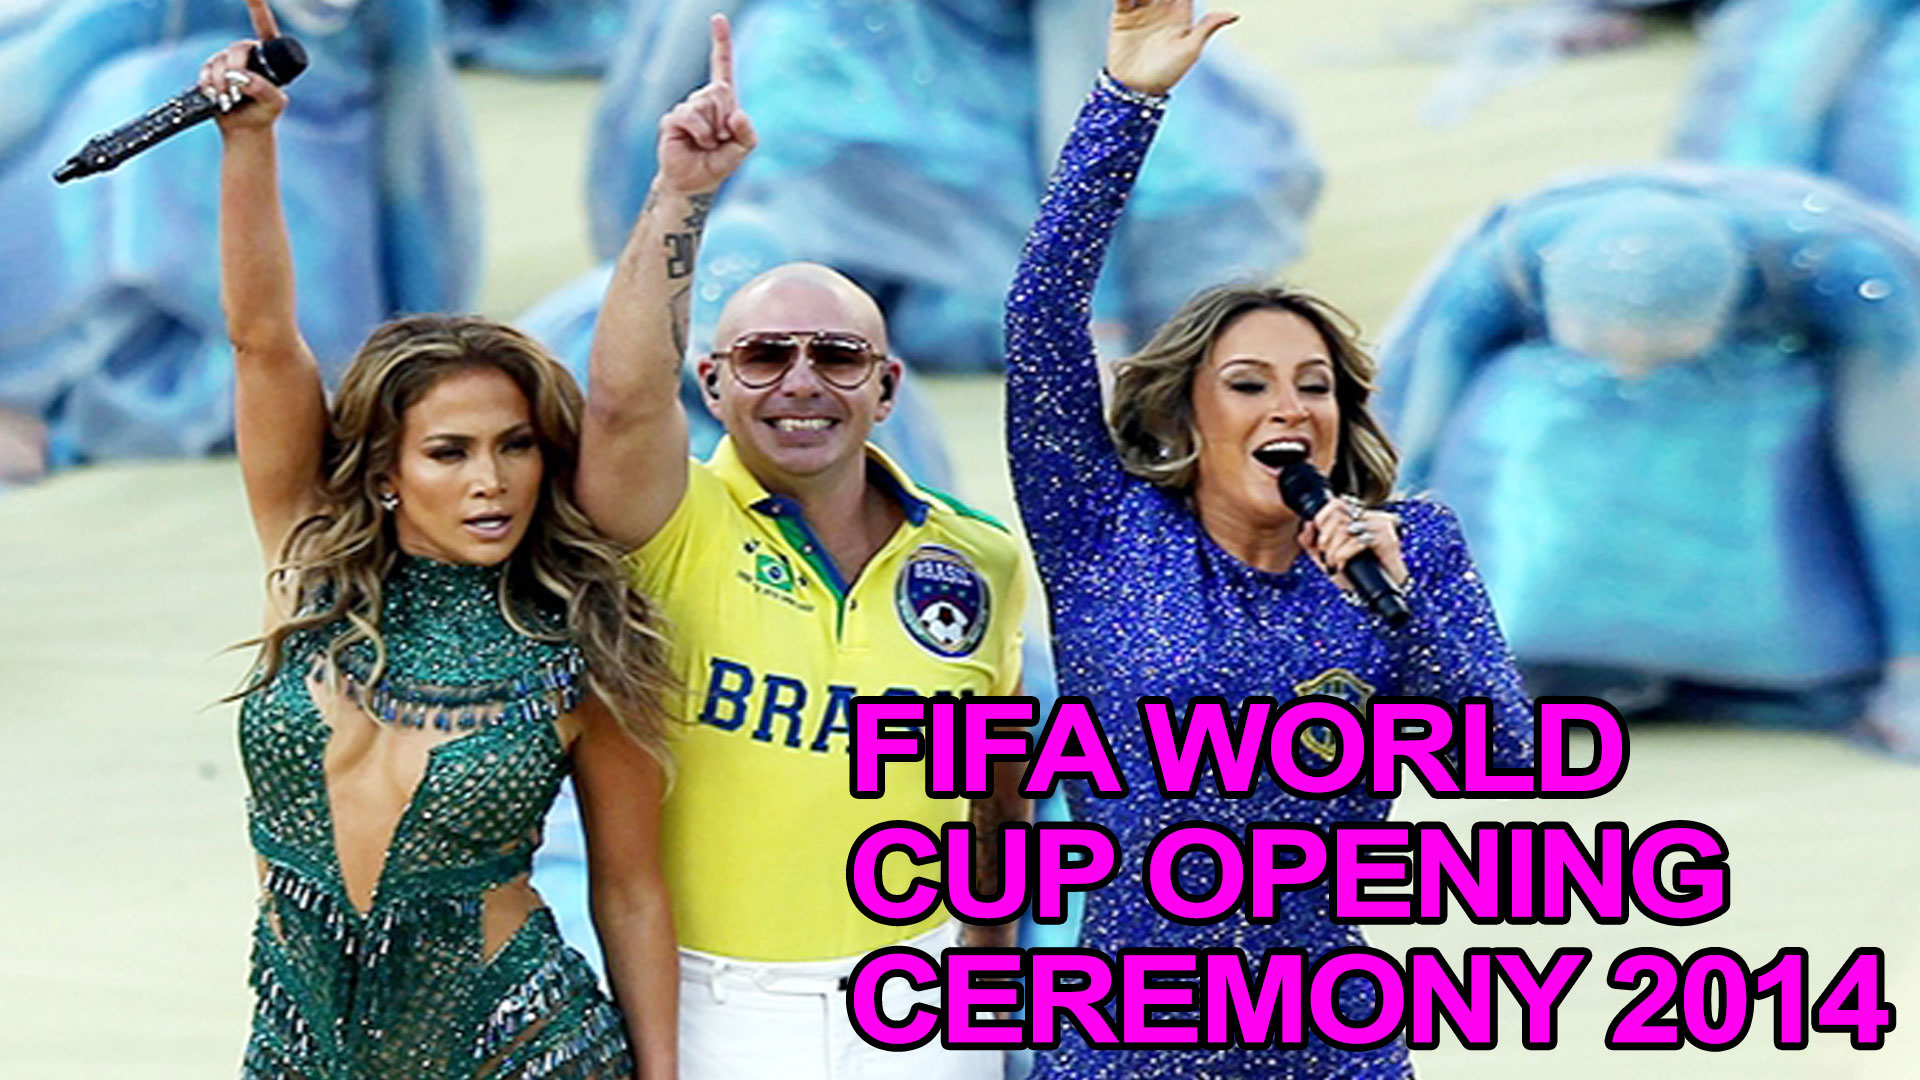 jennifer-lopez-pitbull-world-cup-2014